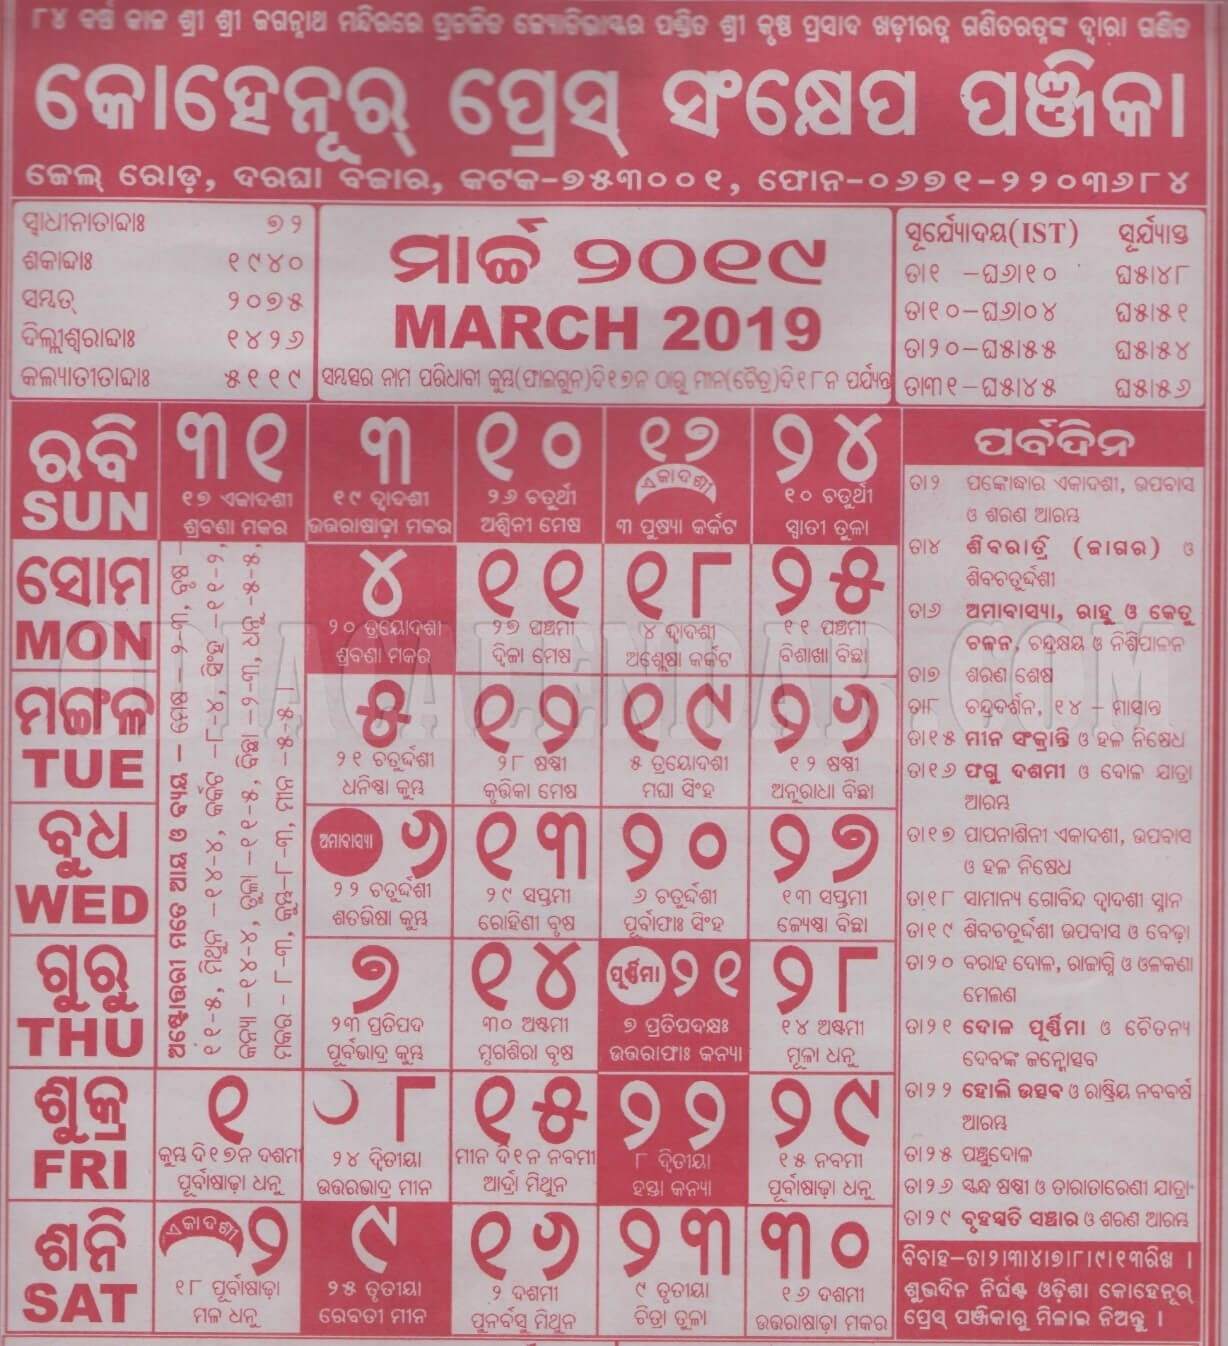 Odia Kohinoor Calendar 2019 March View And Download Free Odia Calendar 2019